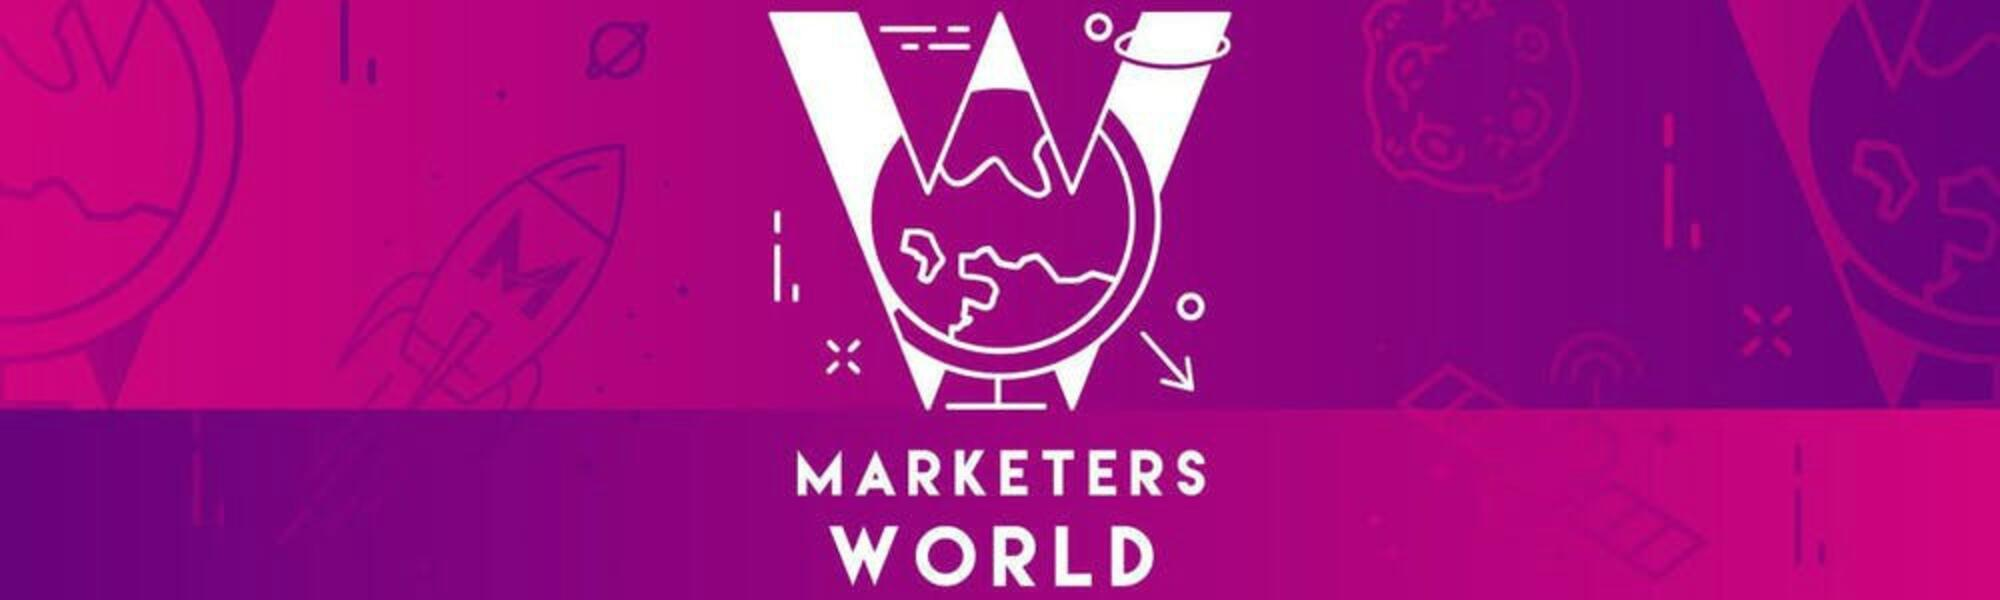 Offerta Dario Vignali Marketers World 18-20 ottobre 2019 Rimini Palacongressi